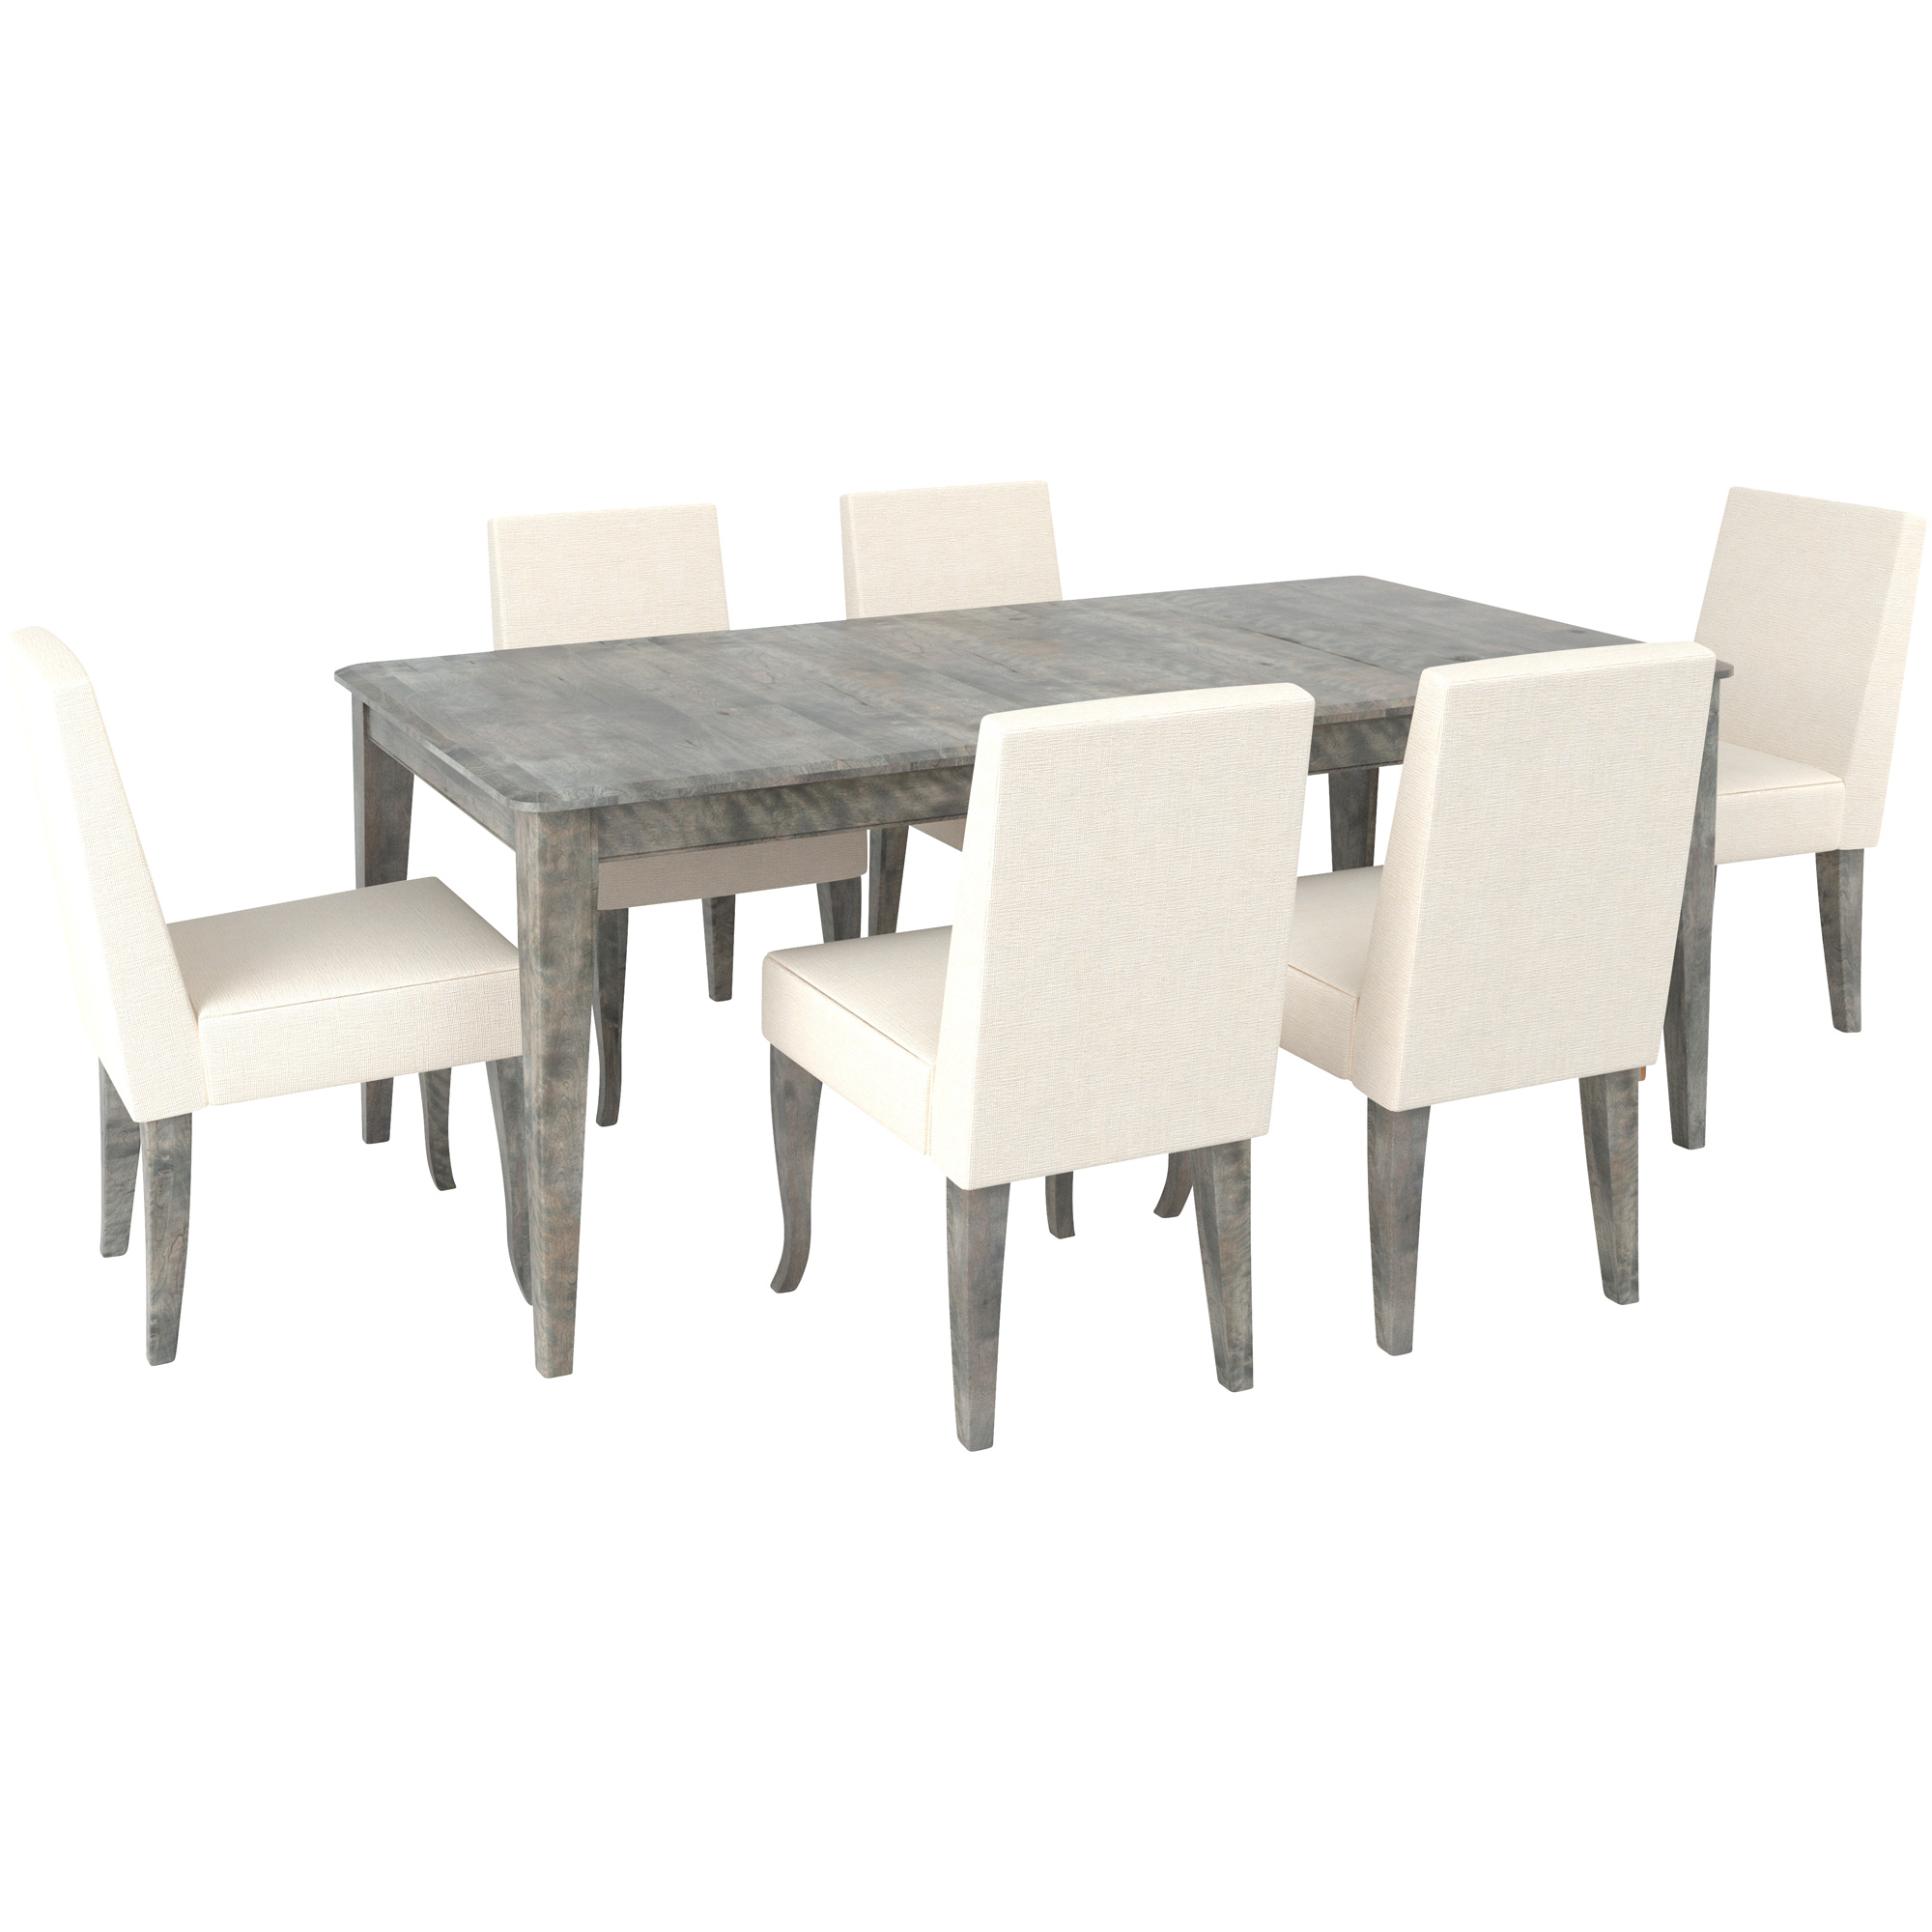 Canadel Furniture | Malibu Off White 5 Piece Dining Set